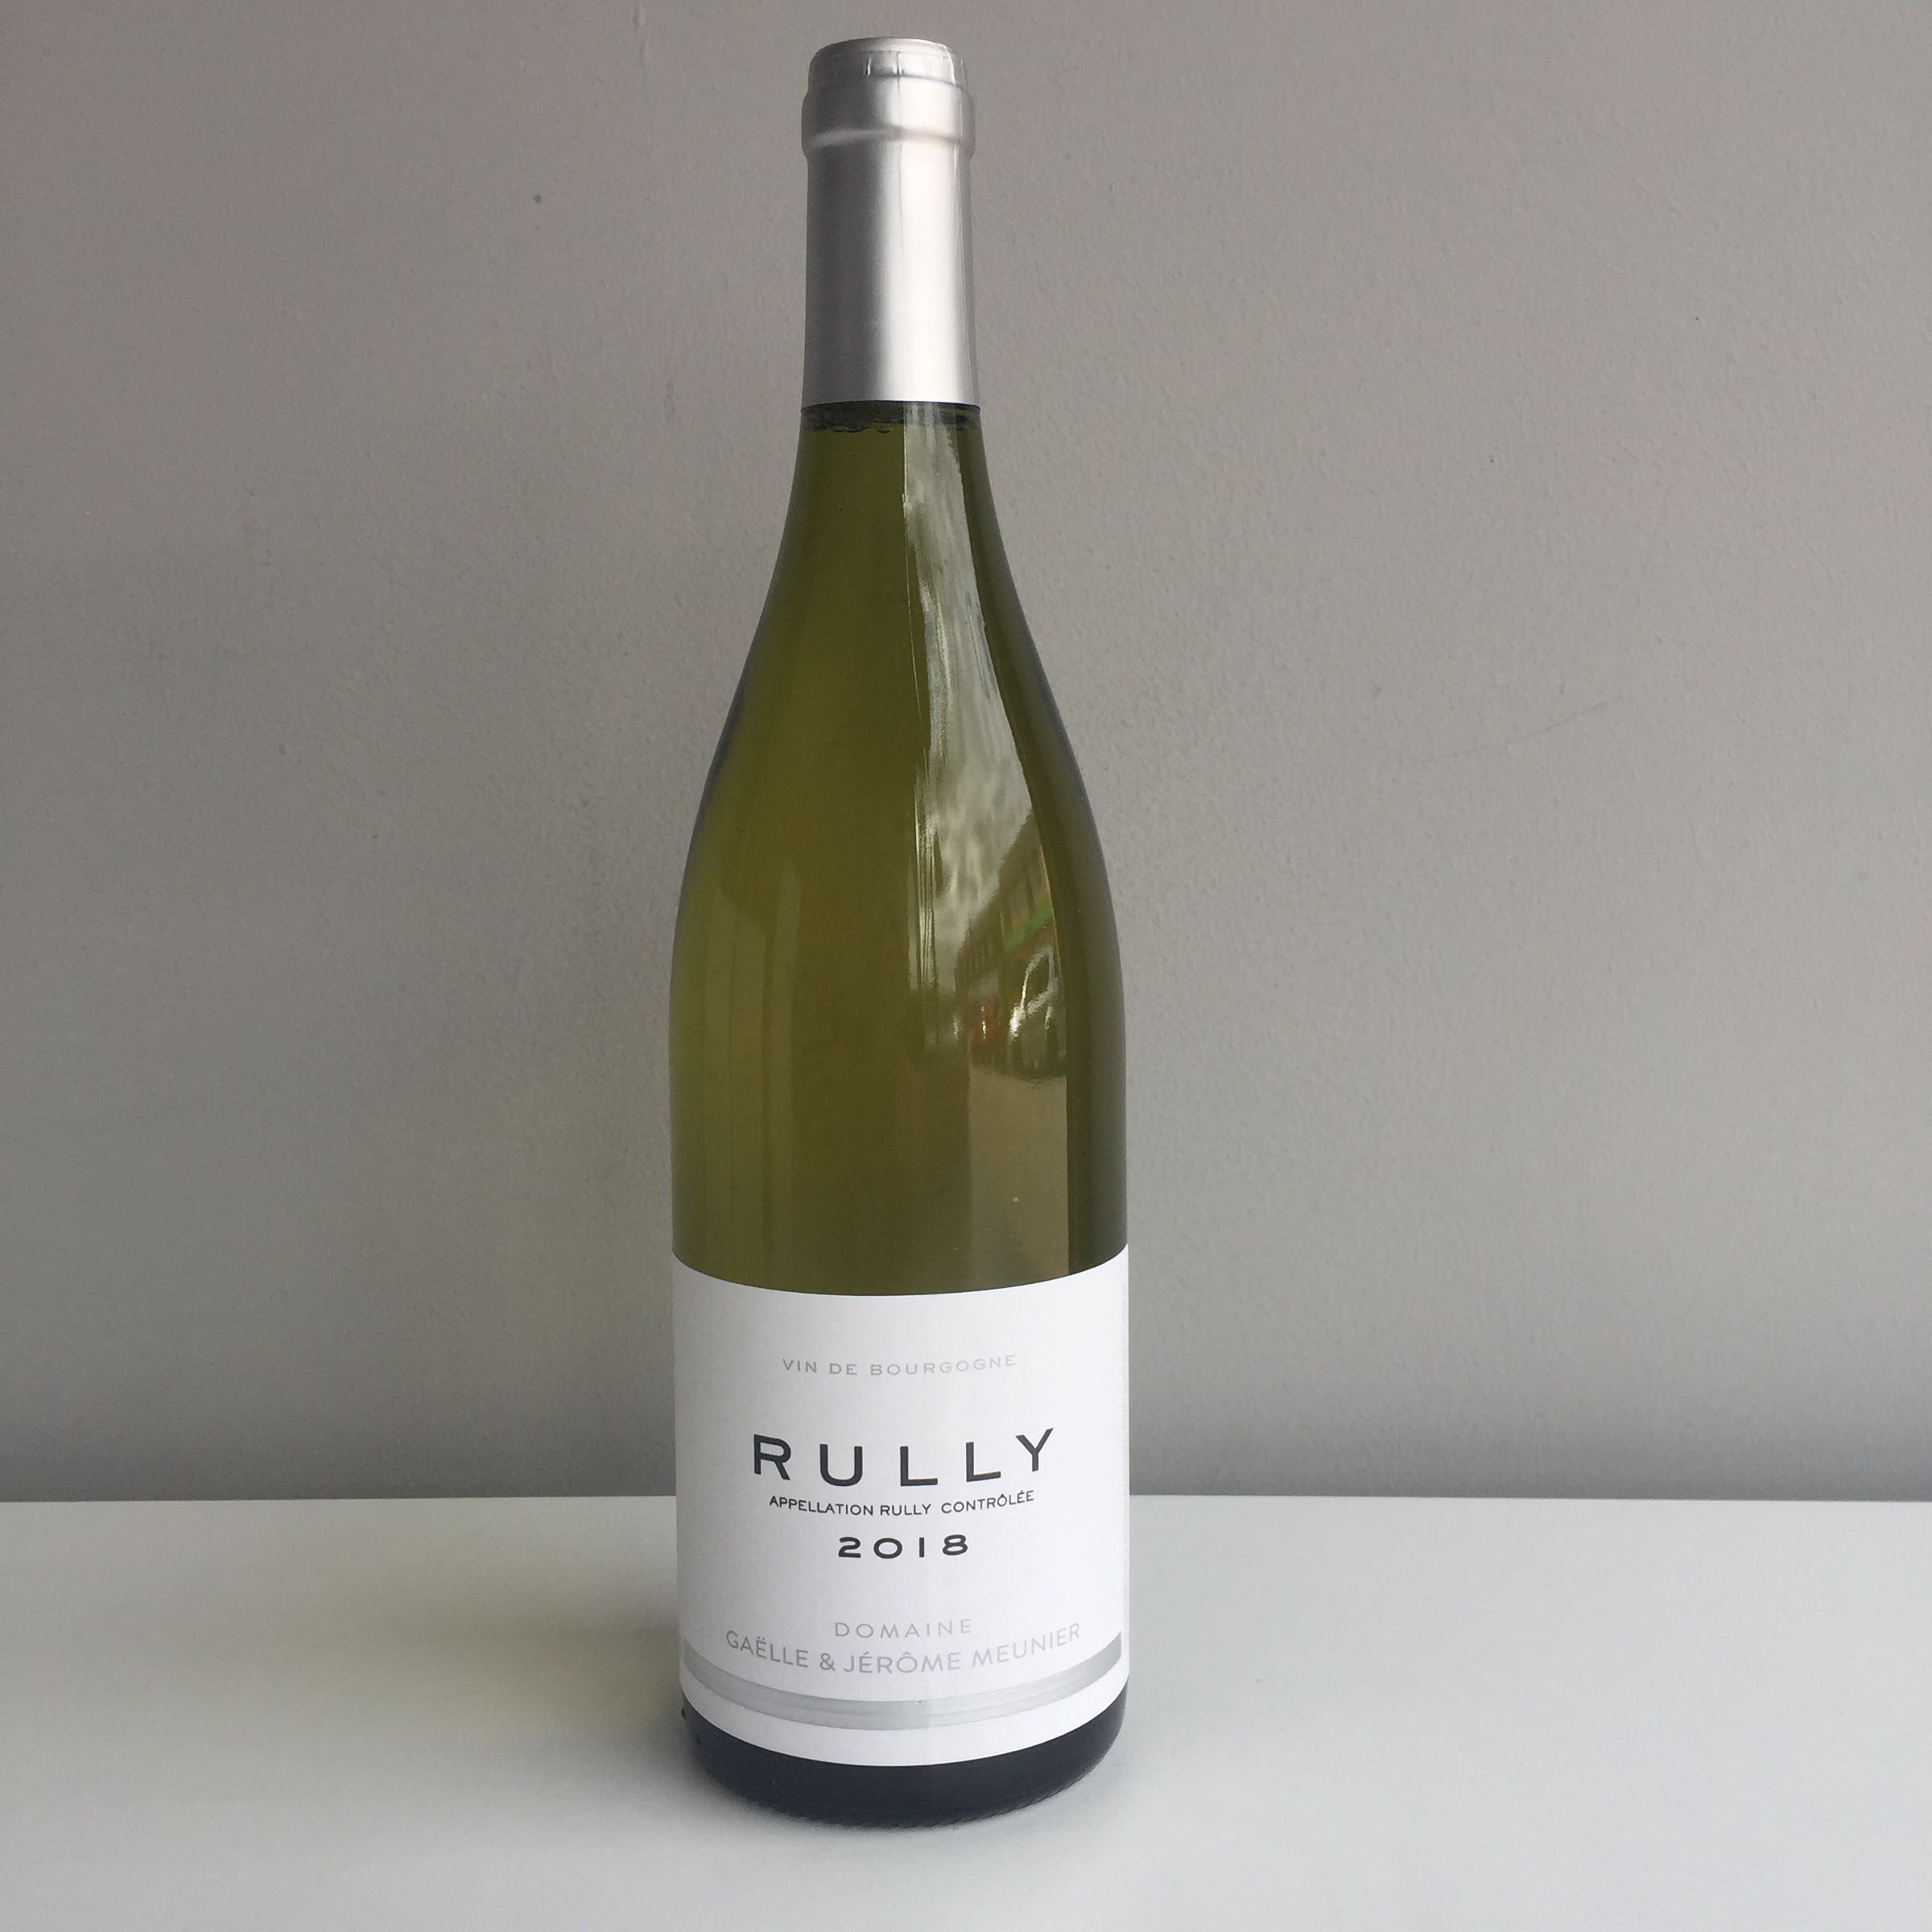 Rully Blanc 2018 - Domaine Gaëlle & Jerome Meunier